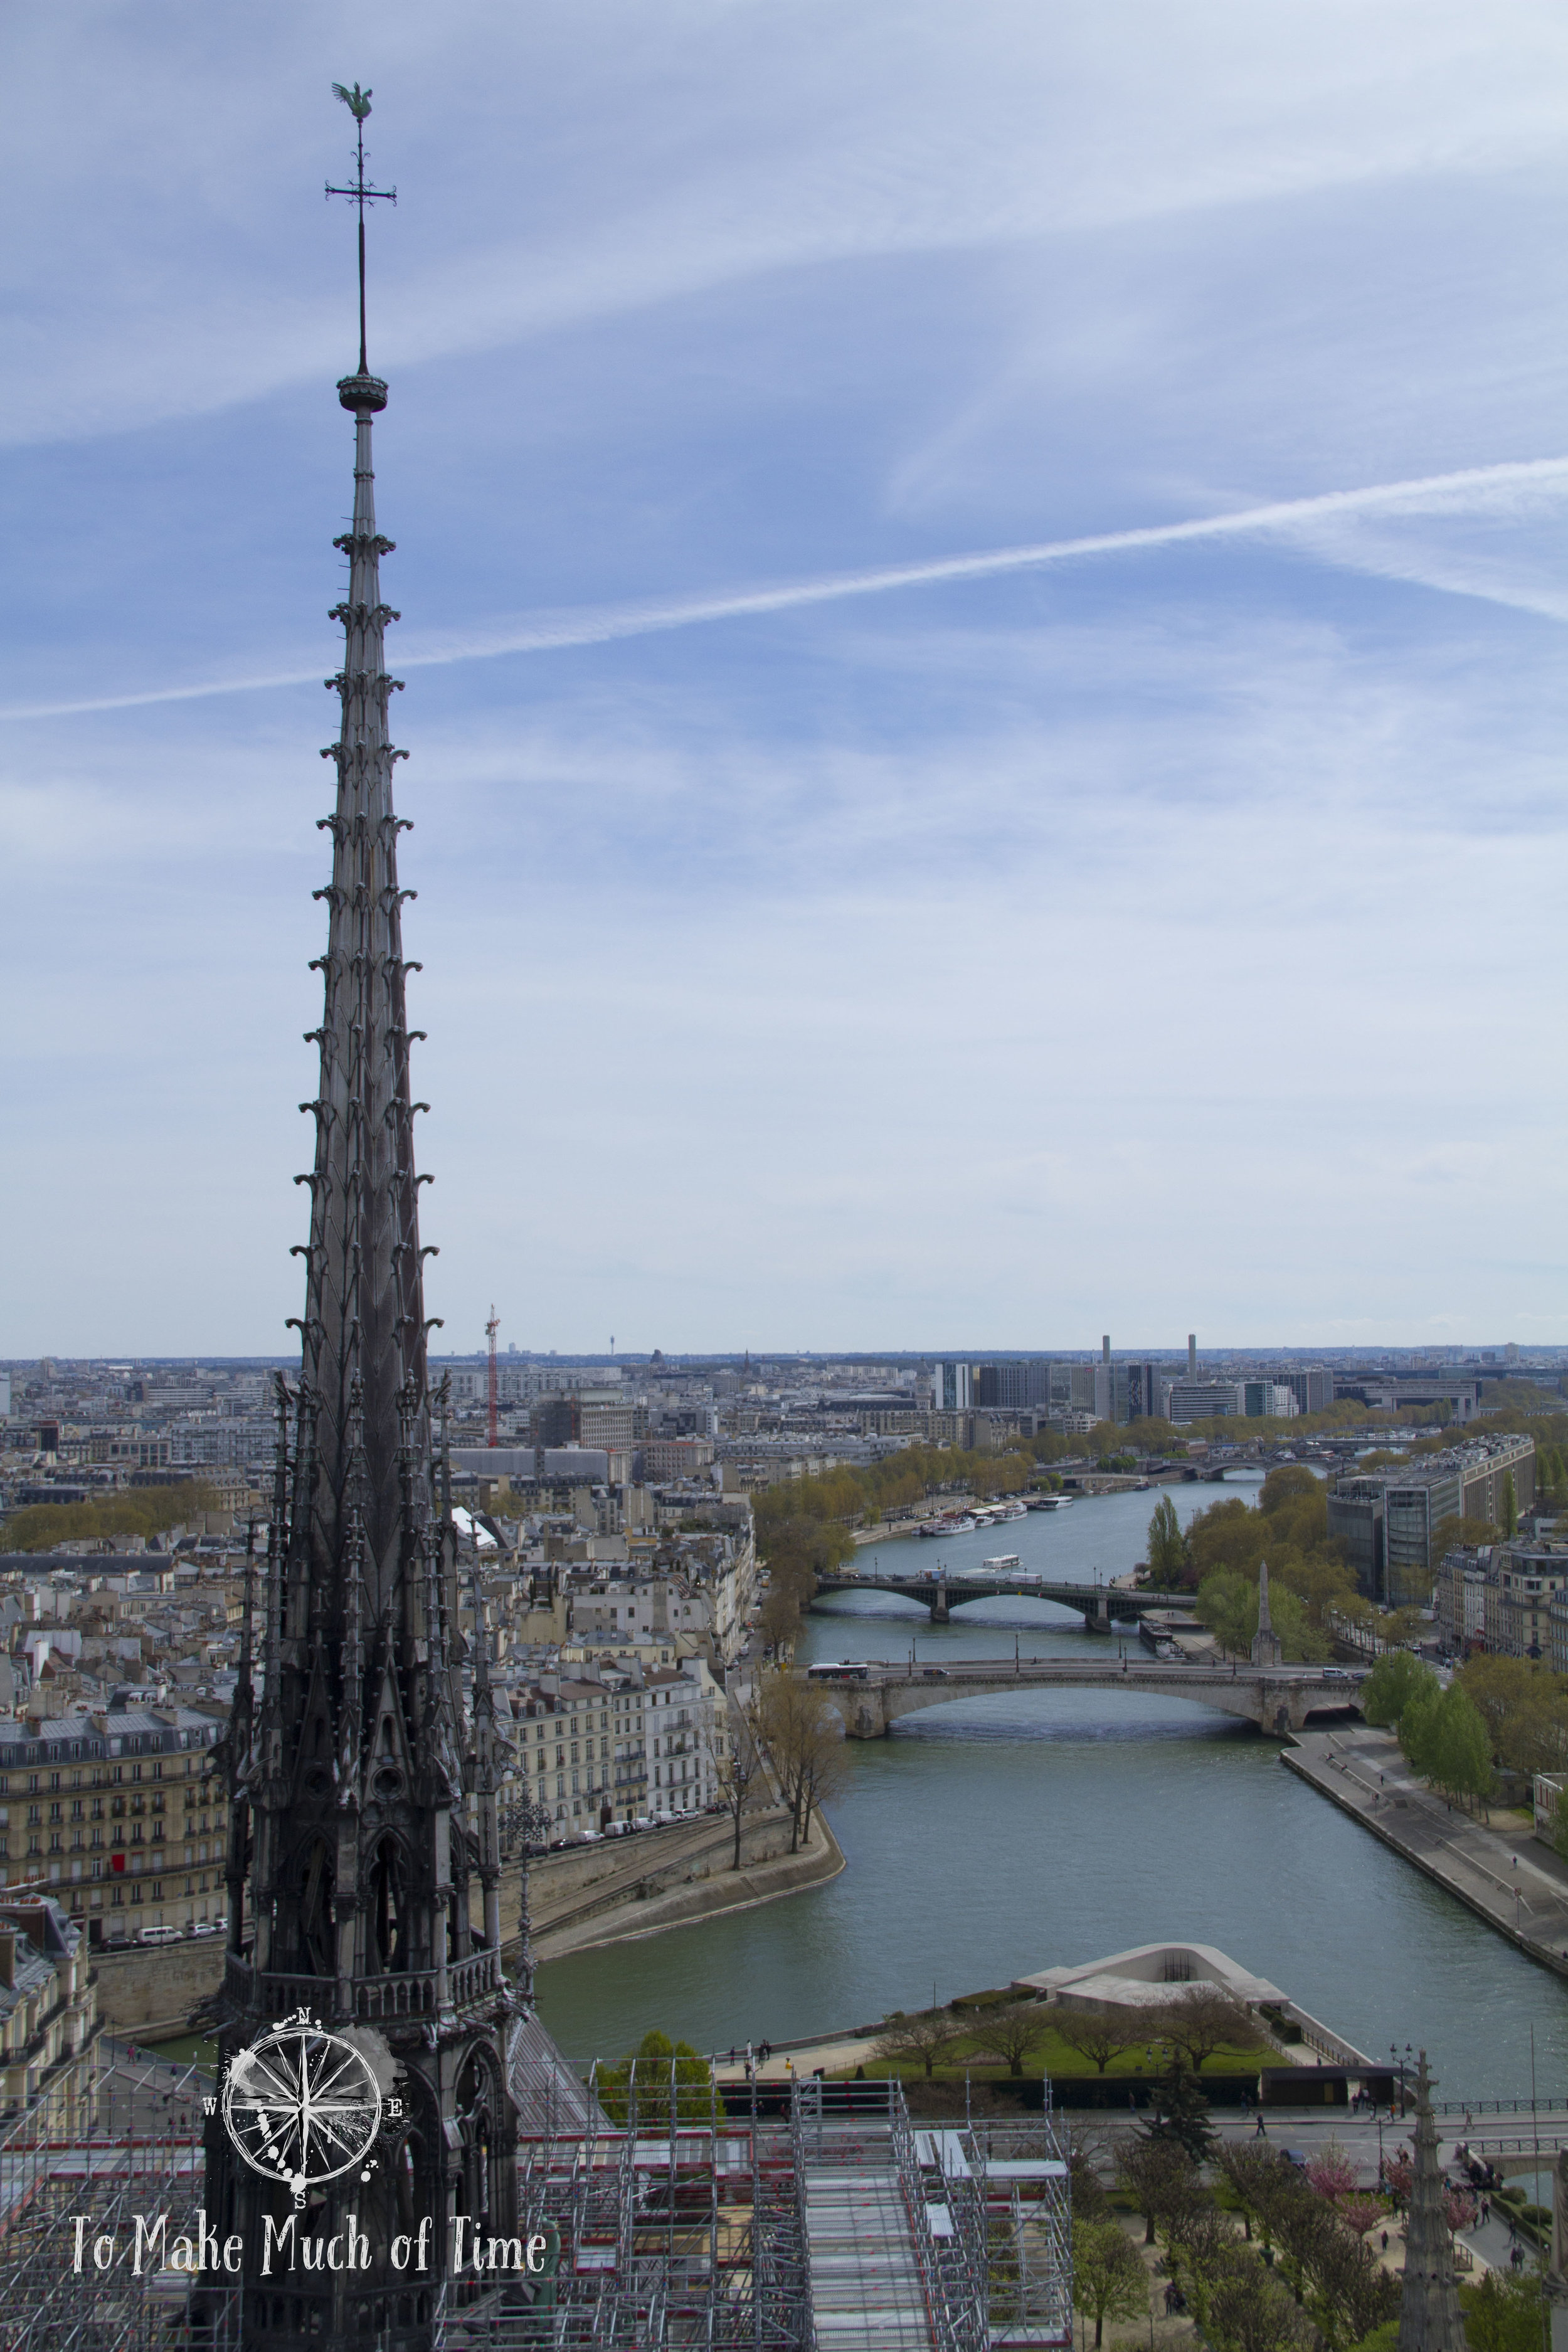 We got a closer view of the Notre-Dame spire and down below the Seine winding it's way though Paris.